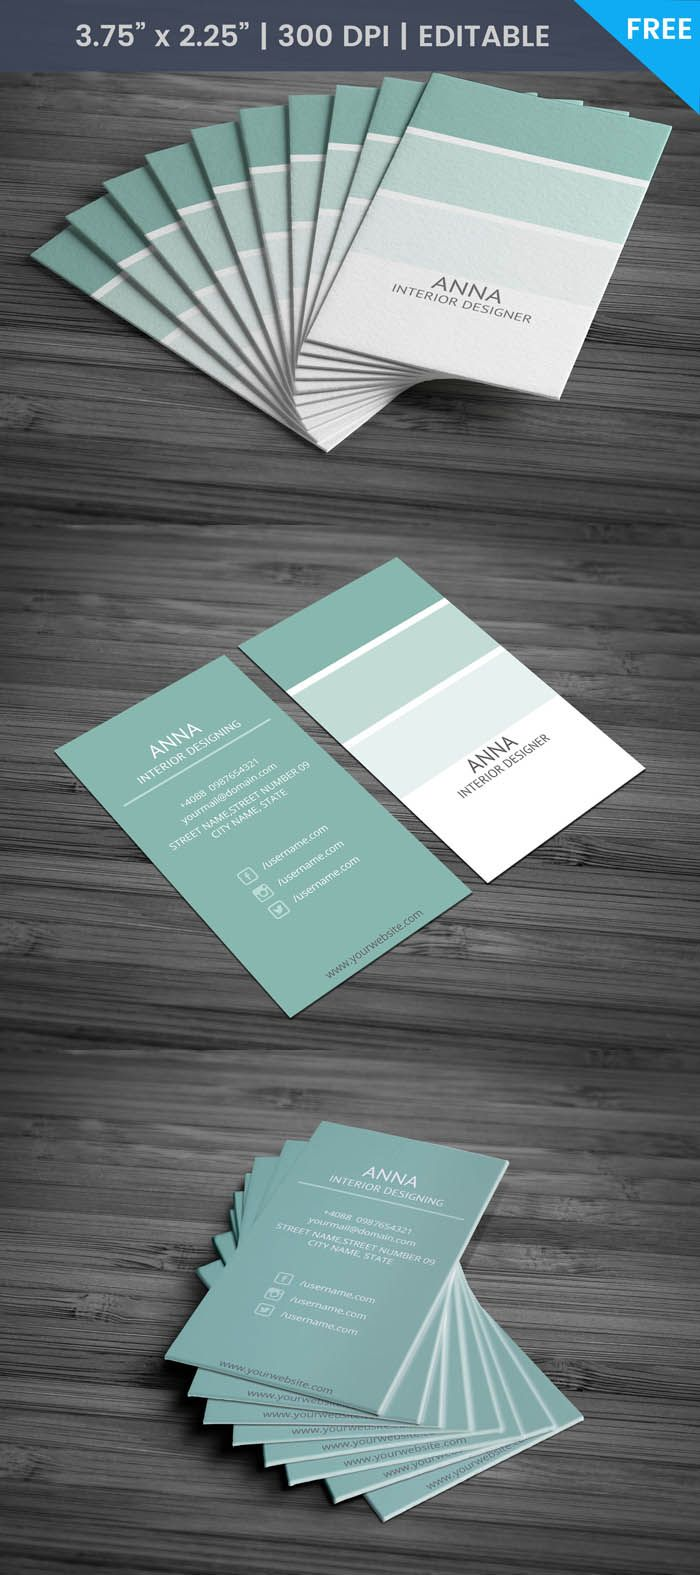 Free free interior designing business card business card by kate free free interior designing business card business card by kate harrington pinterest card templates business cards and template fbccfo Image collections